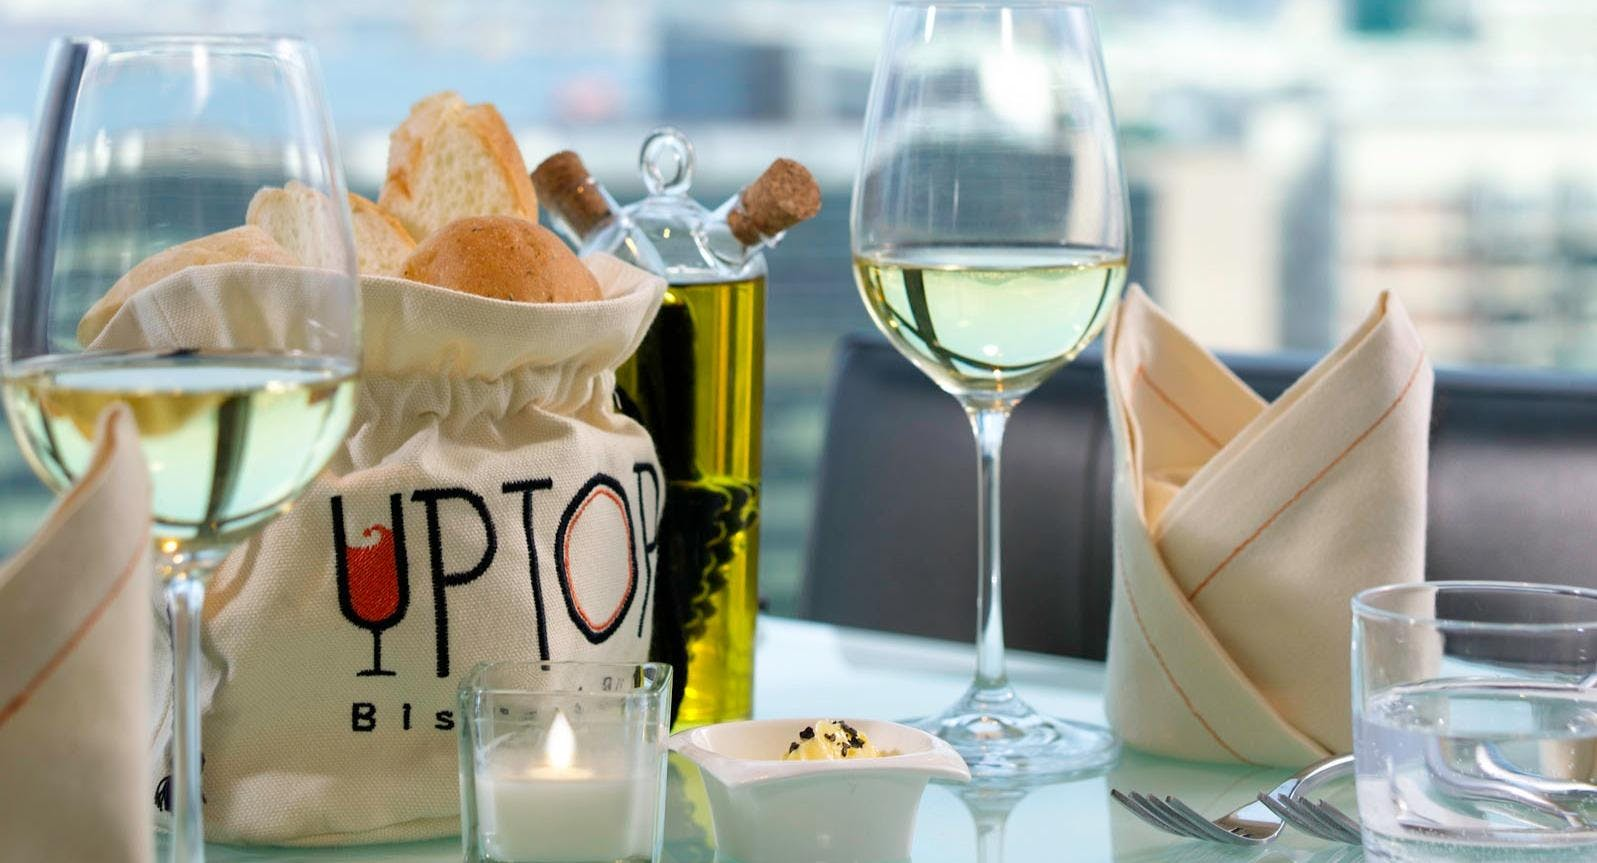 Uptop Bistro and Bar